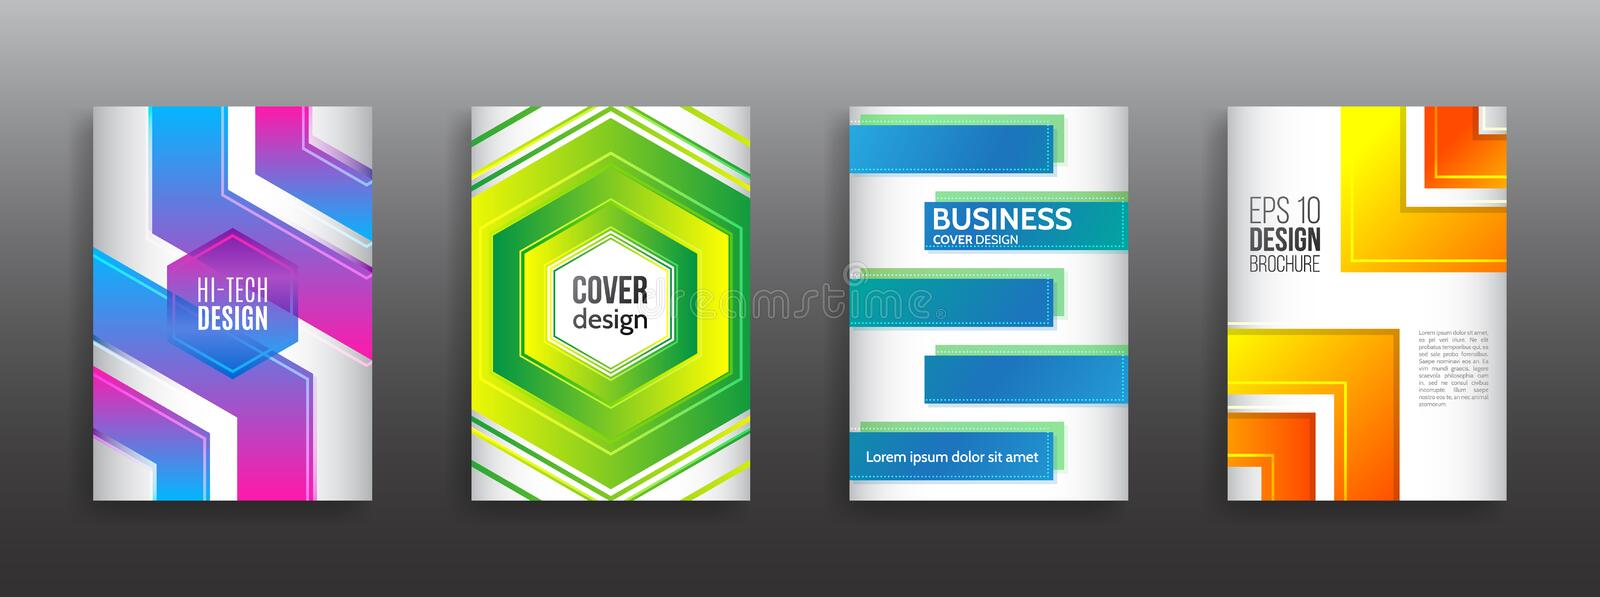 Minimal dynamic cover design. Abstract geometric line gradient background vector illustration